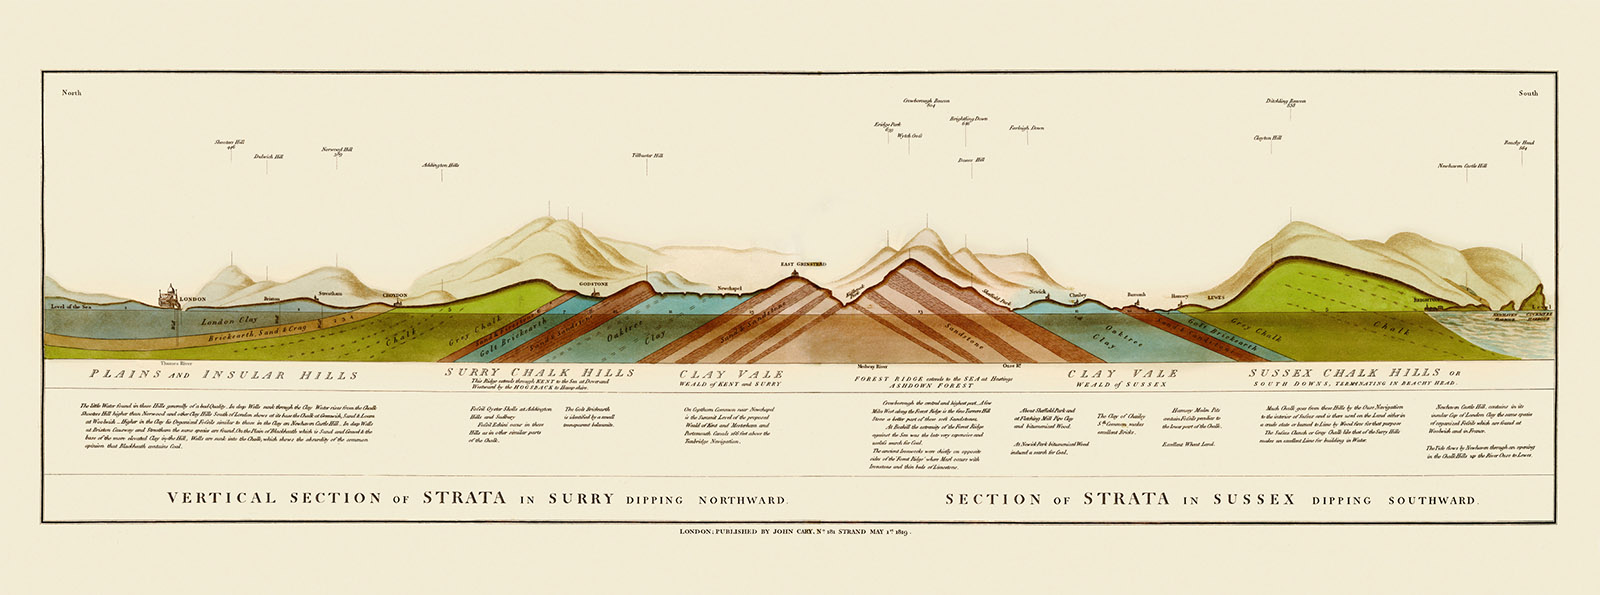 A cross section of the strata in Surrey and Sussex; illustration by William Smith and John Cary